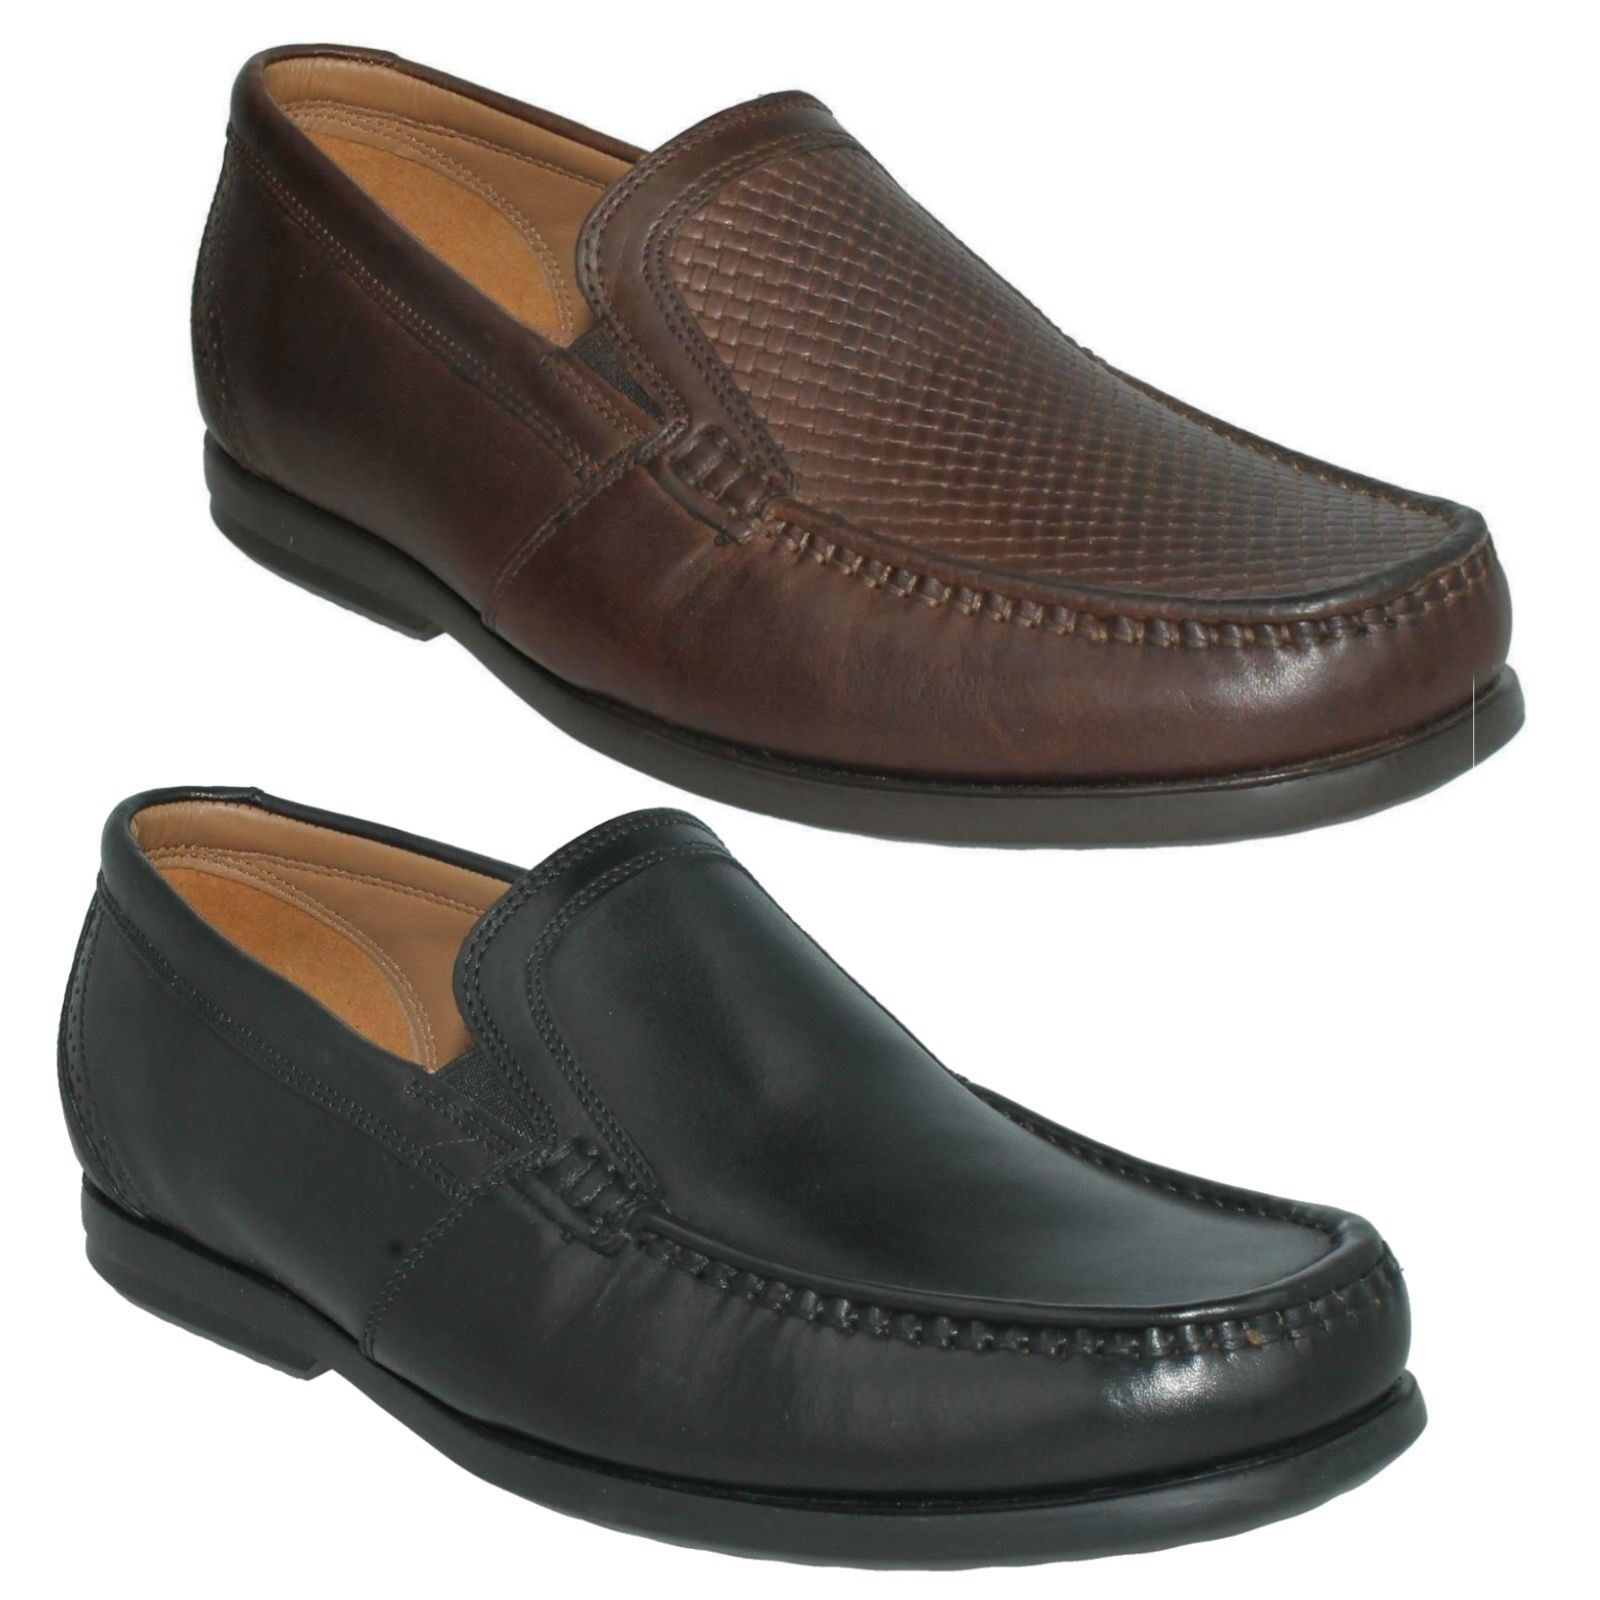 MENS CLARKS UNSTRUCTURED SLIP ON LEATHER WORK STYLISH SHOES SIZE UN GALA FREE